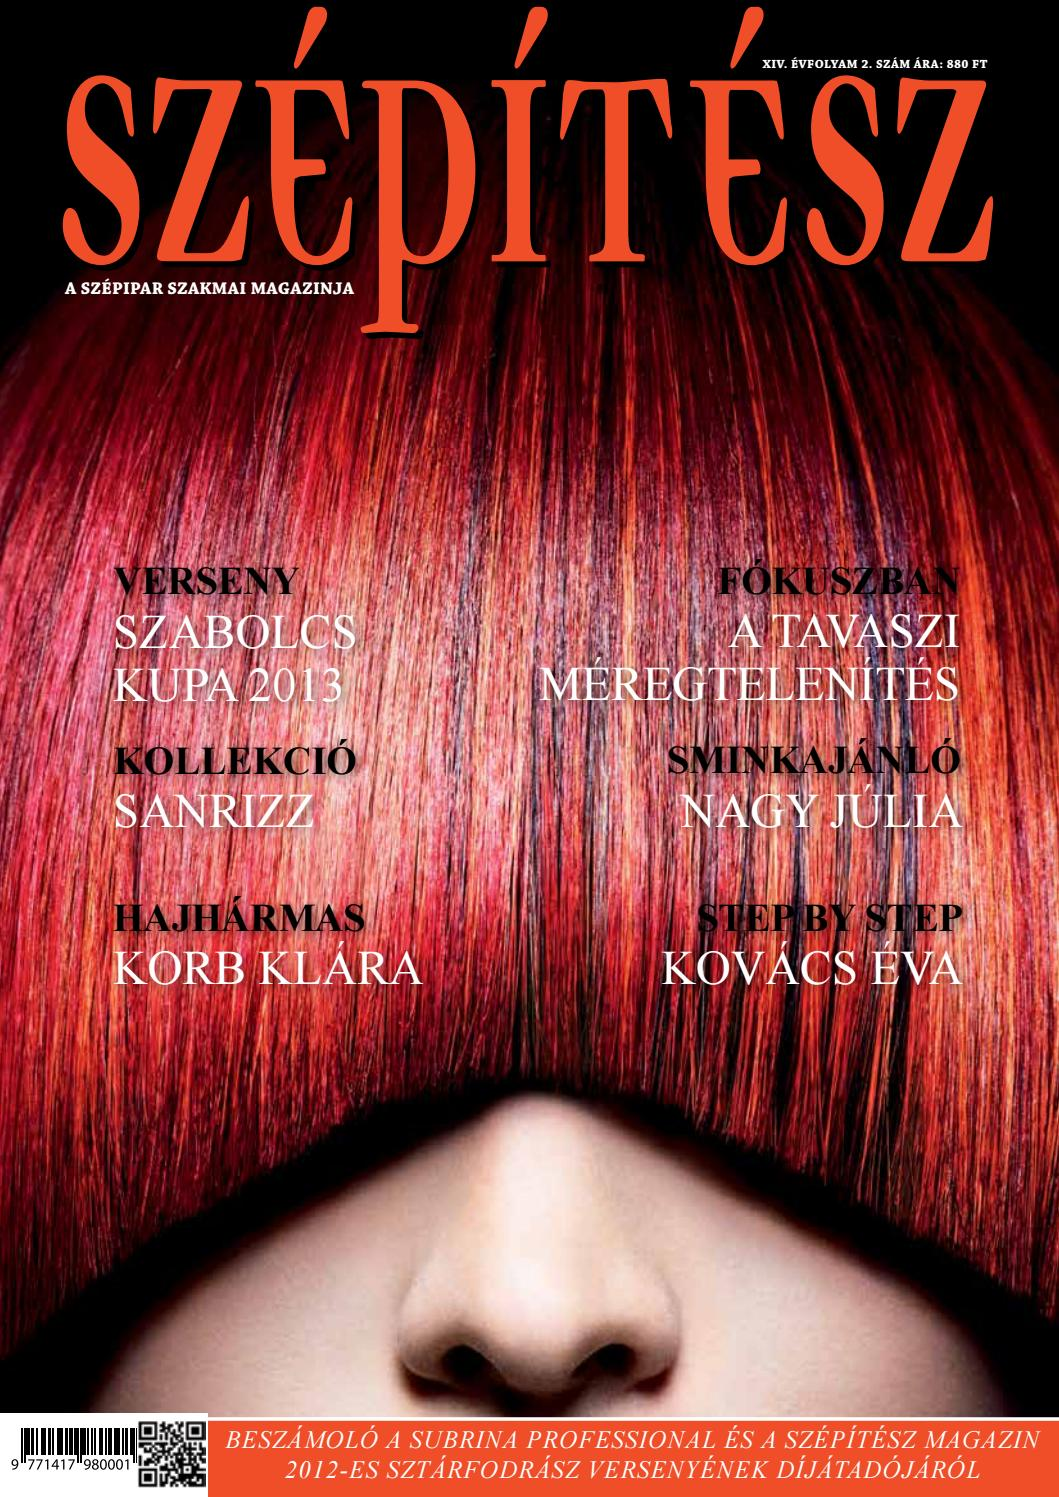 Szepitesz April Online by oscarbeaty - issuu 8dd238a7be